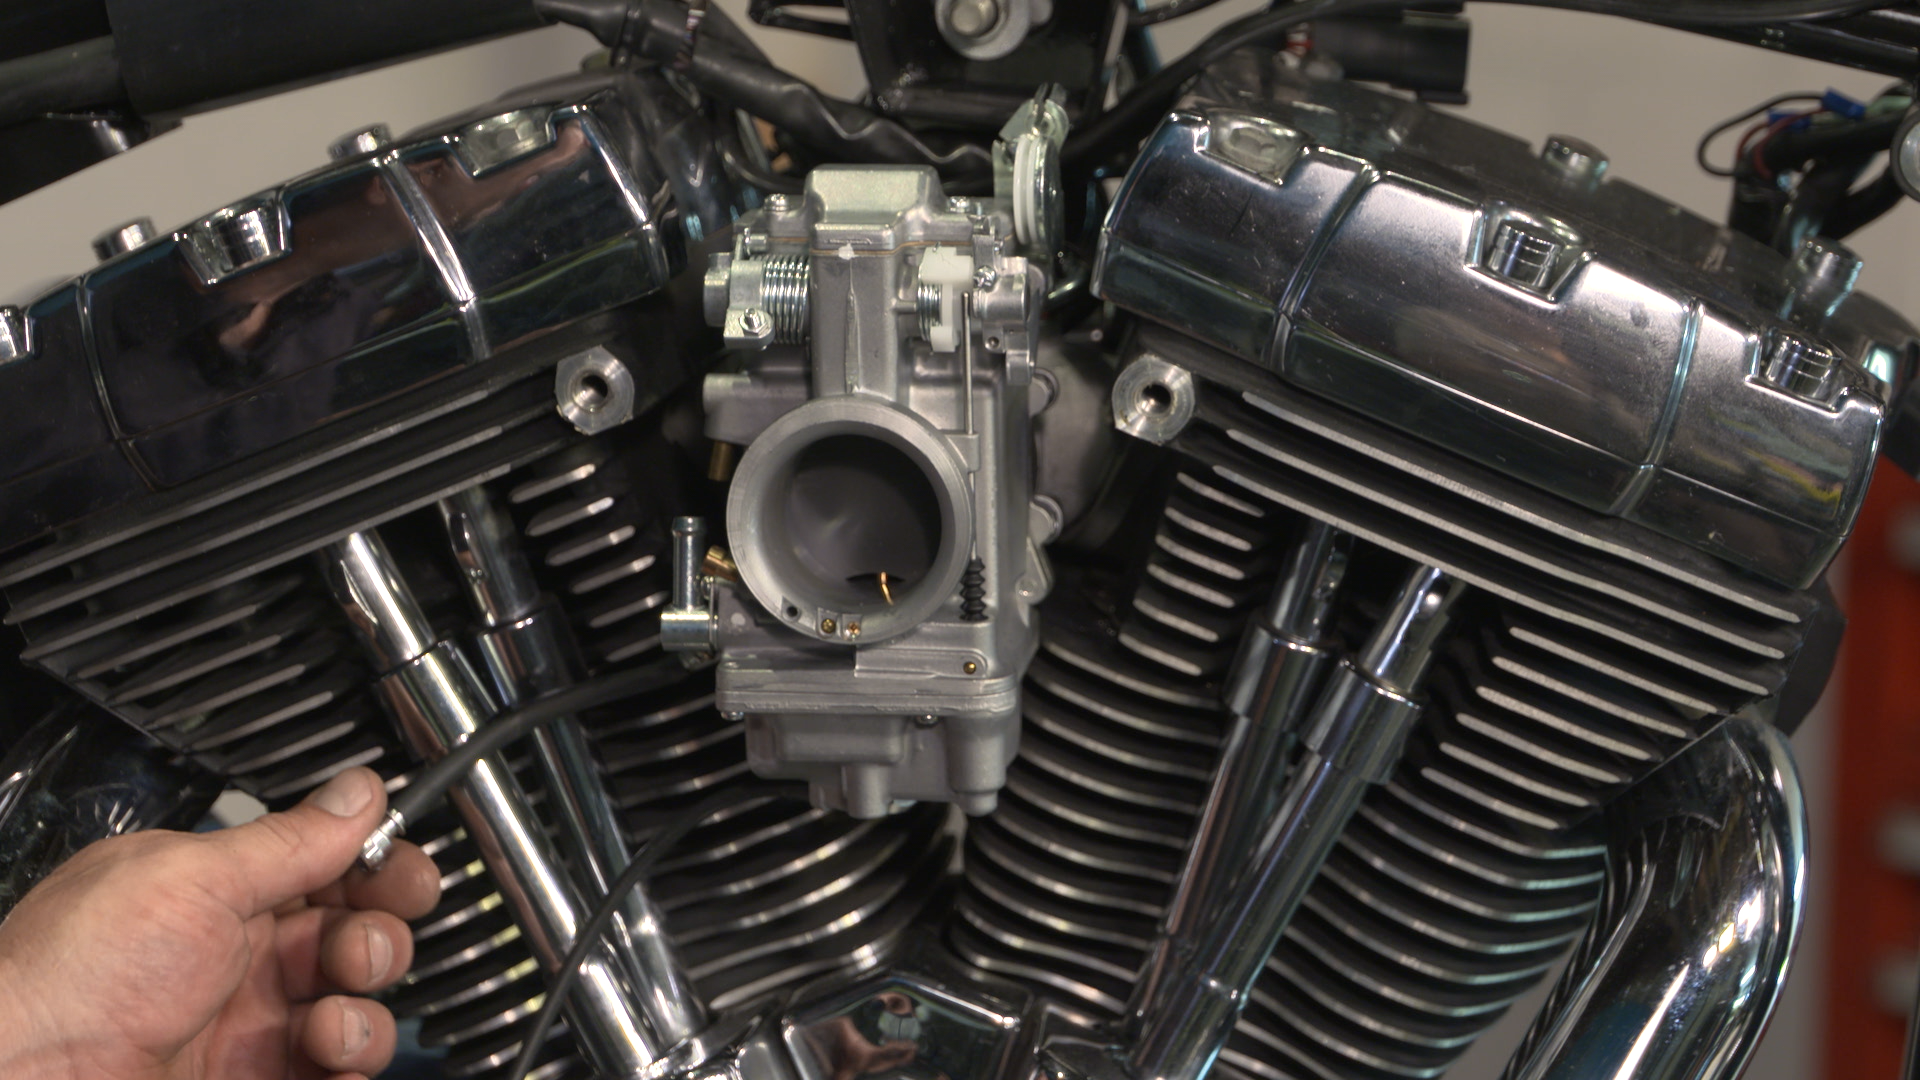 Will I Need to Re-Jet When I Change My Motorcycle Exhaust Pipes?